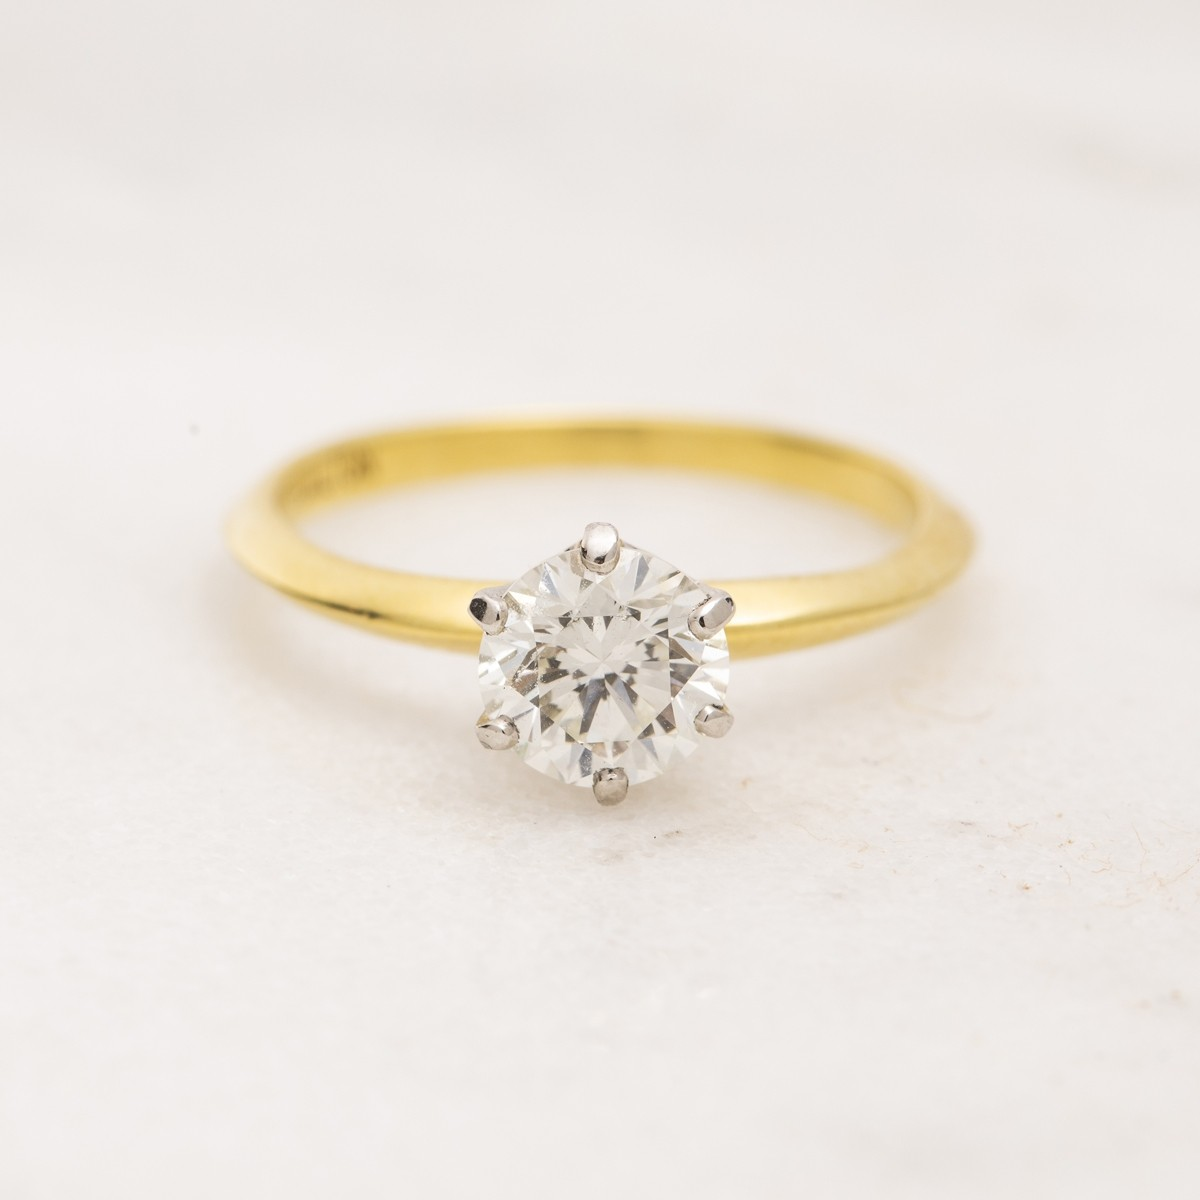 VINTAGE PLATINUM AND 18K YELLOW GOLD DIAMOND SOLITAIRE RING